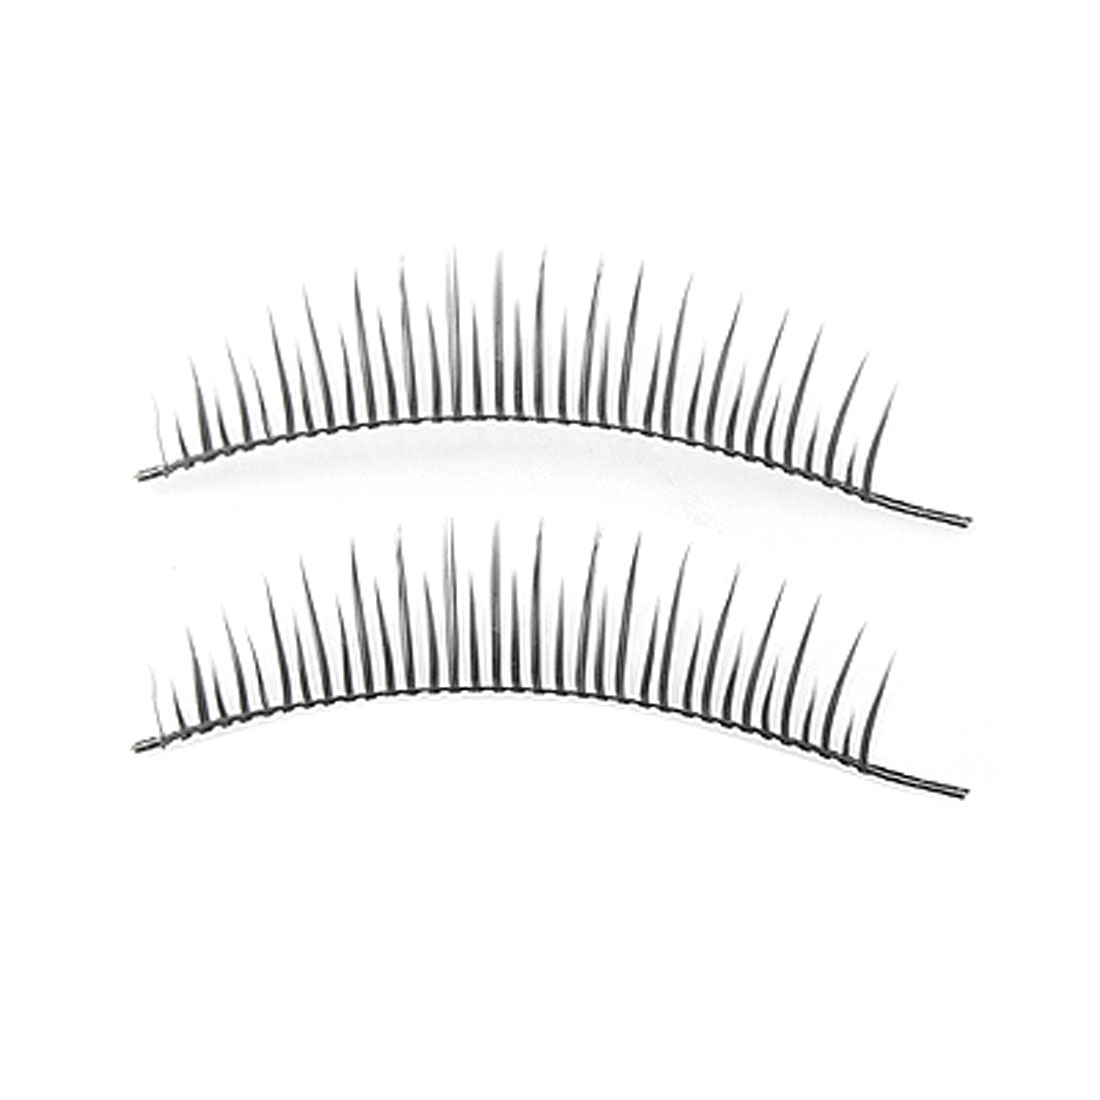 10 Pairs Women Eye Making Up Tool Black Curl False Eyelashes